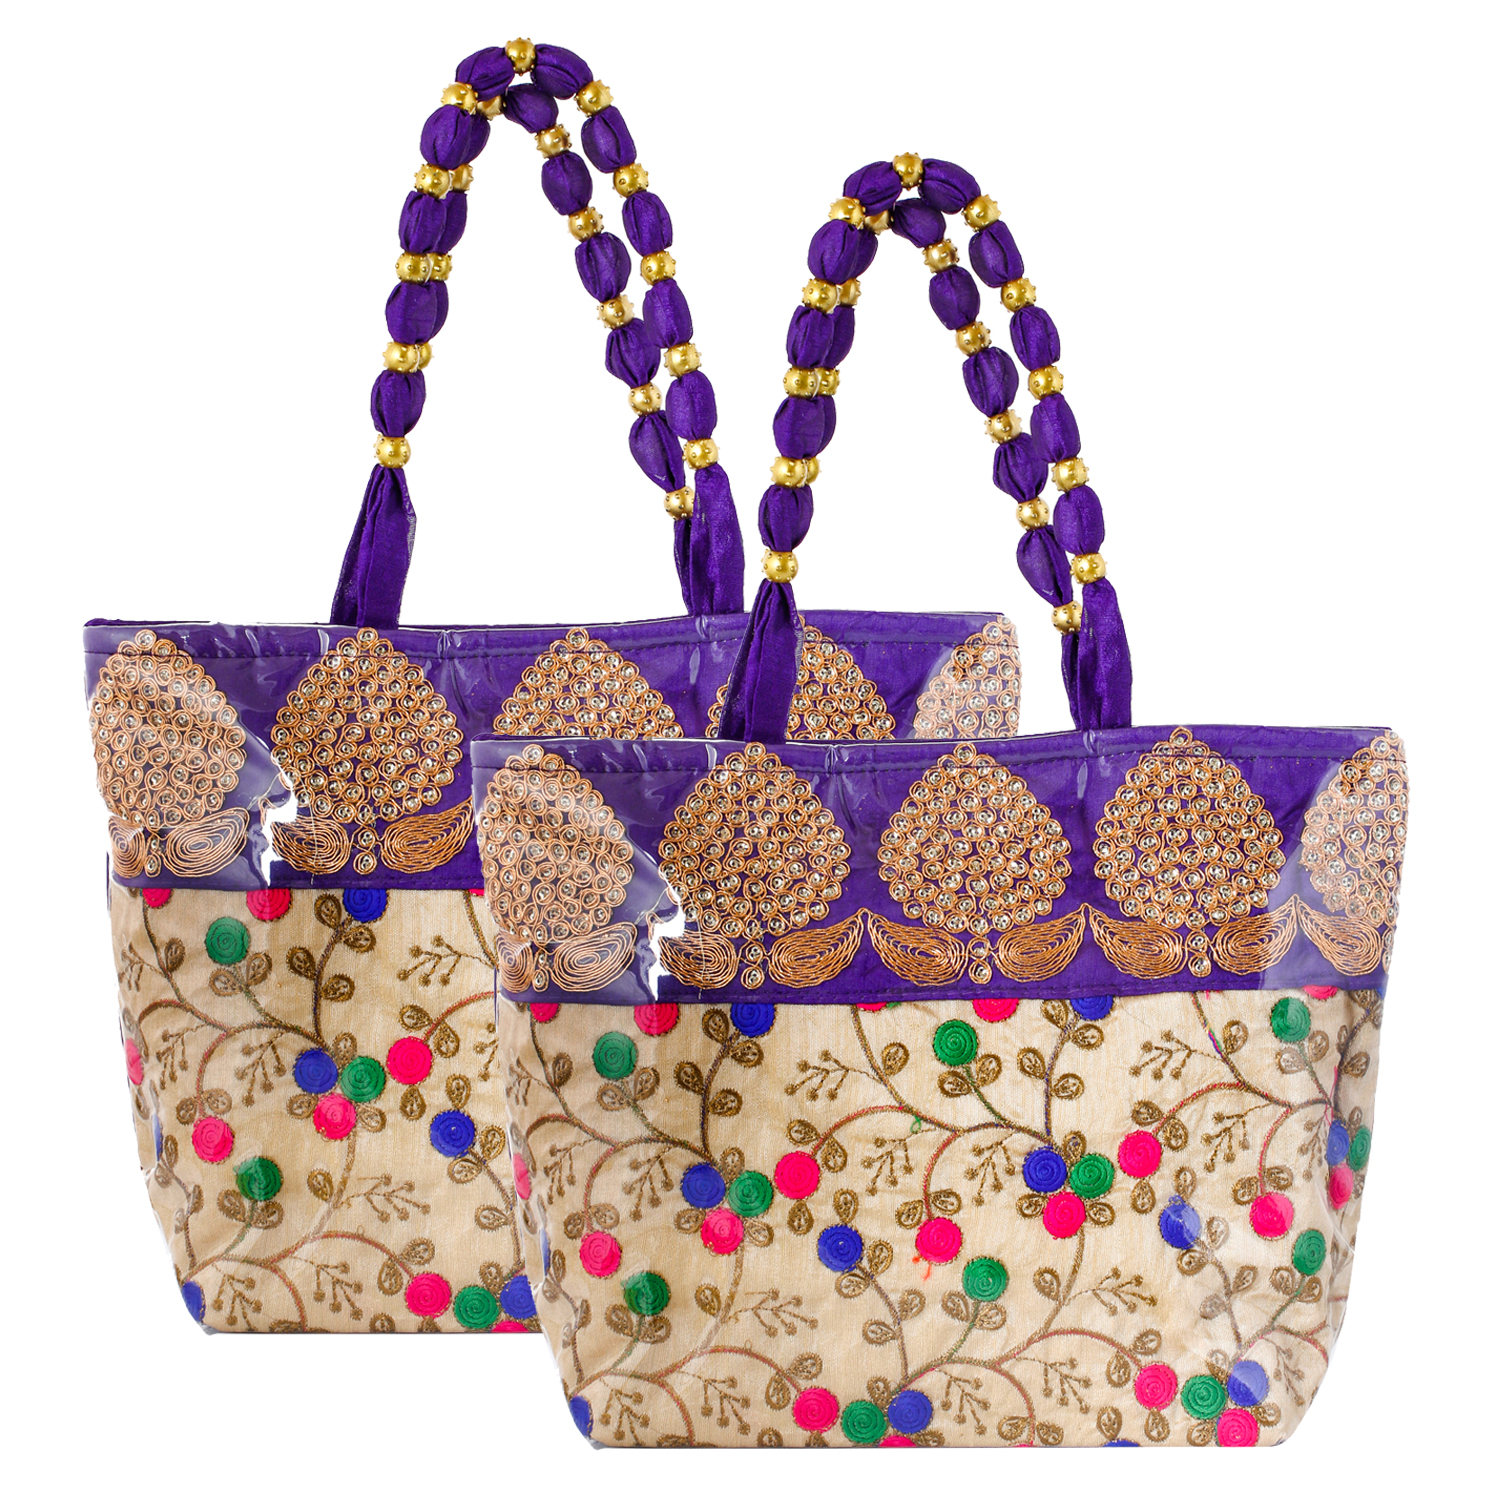 Kuber Industries Floral Design Silk 2 Pieces Laminated Embroidered Women's Handbag (Purple) - CTKTC23118